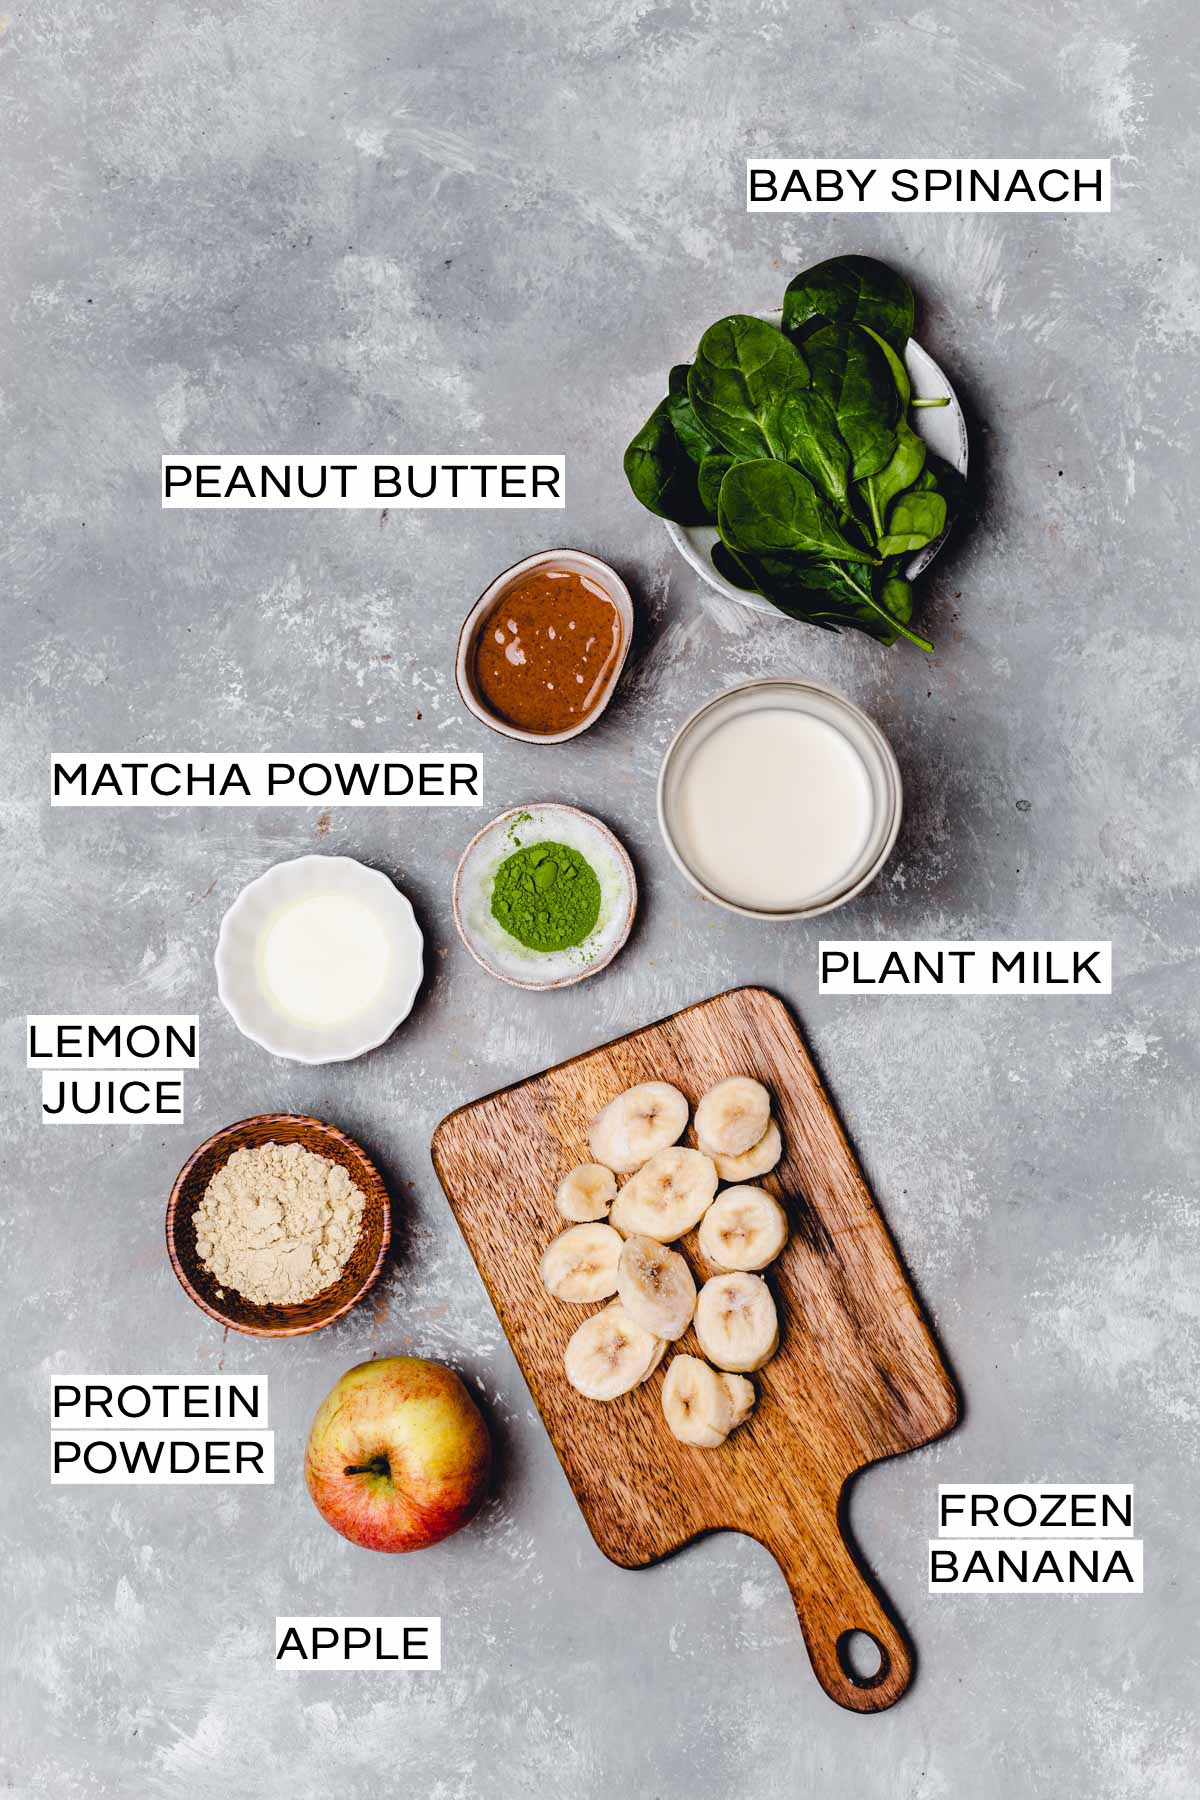 All ingredients needed to make a matcha protein shake laid out on a grey surface.